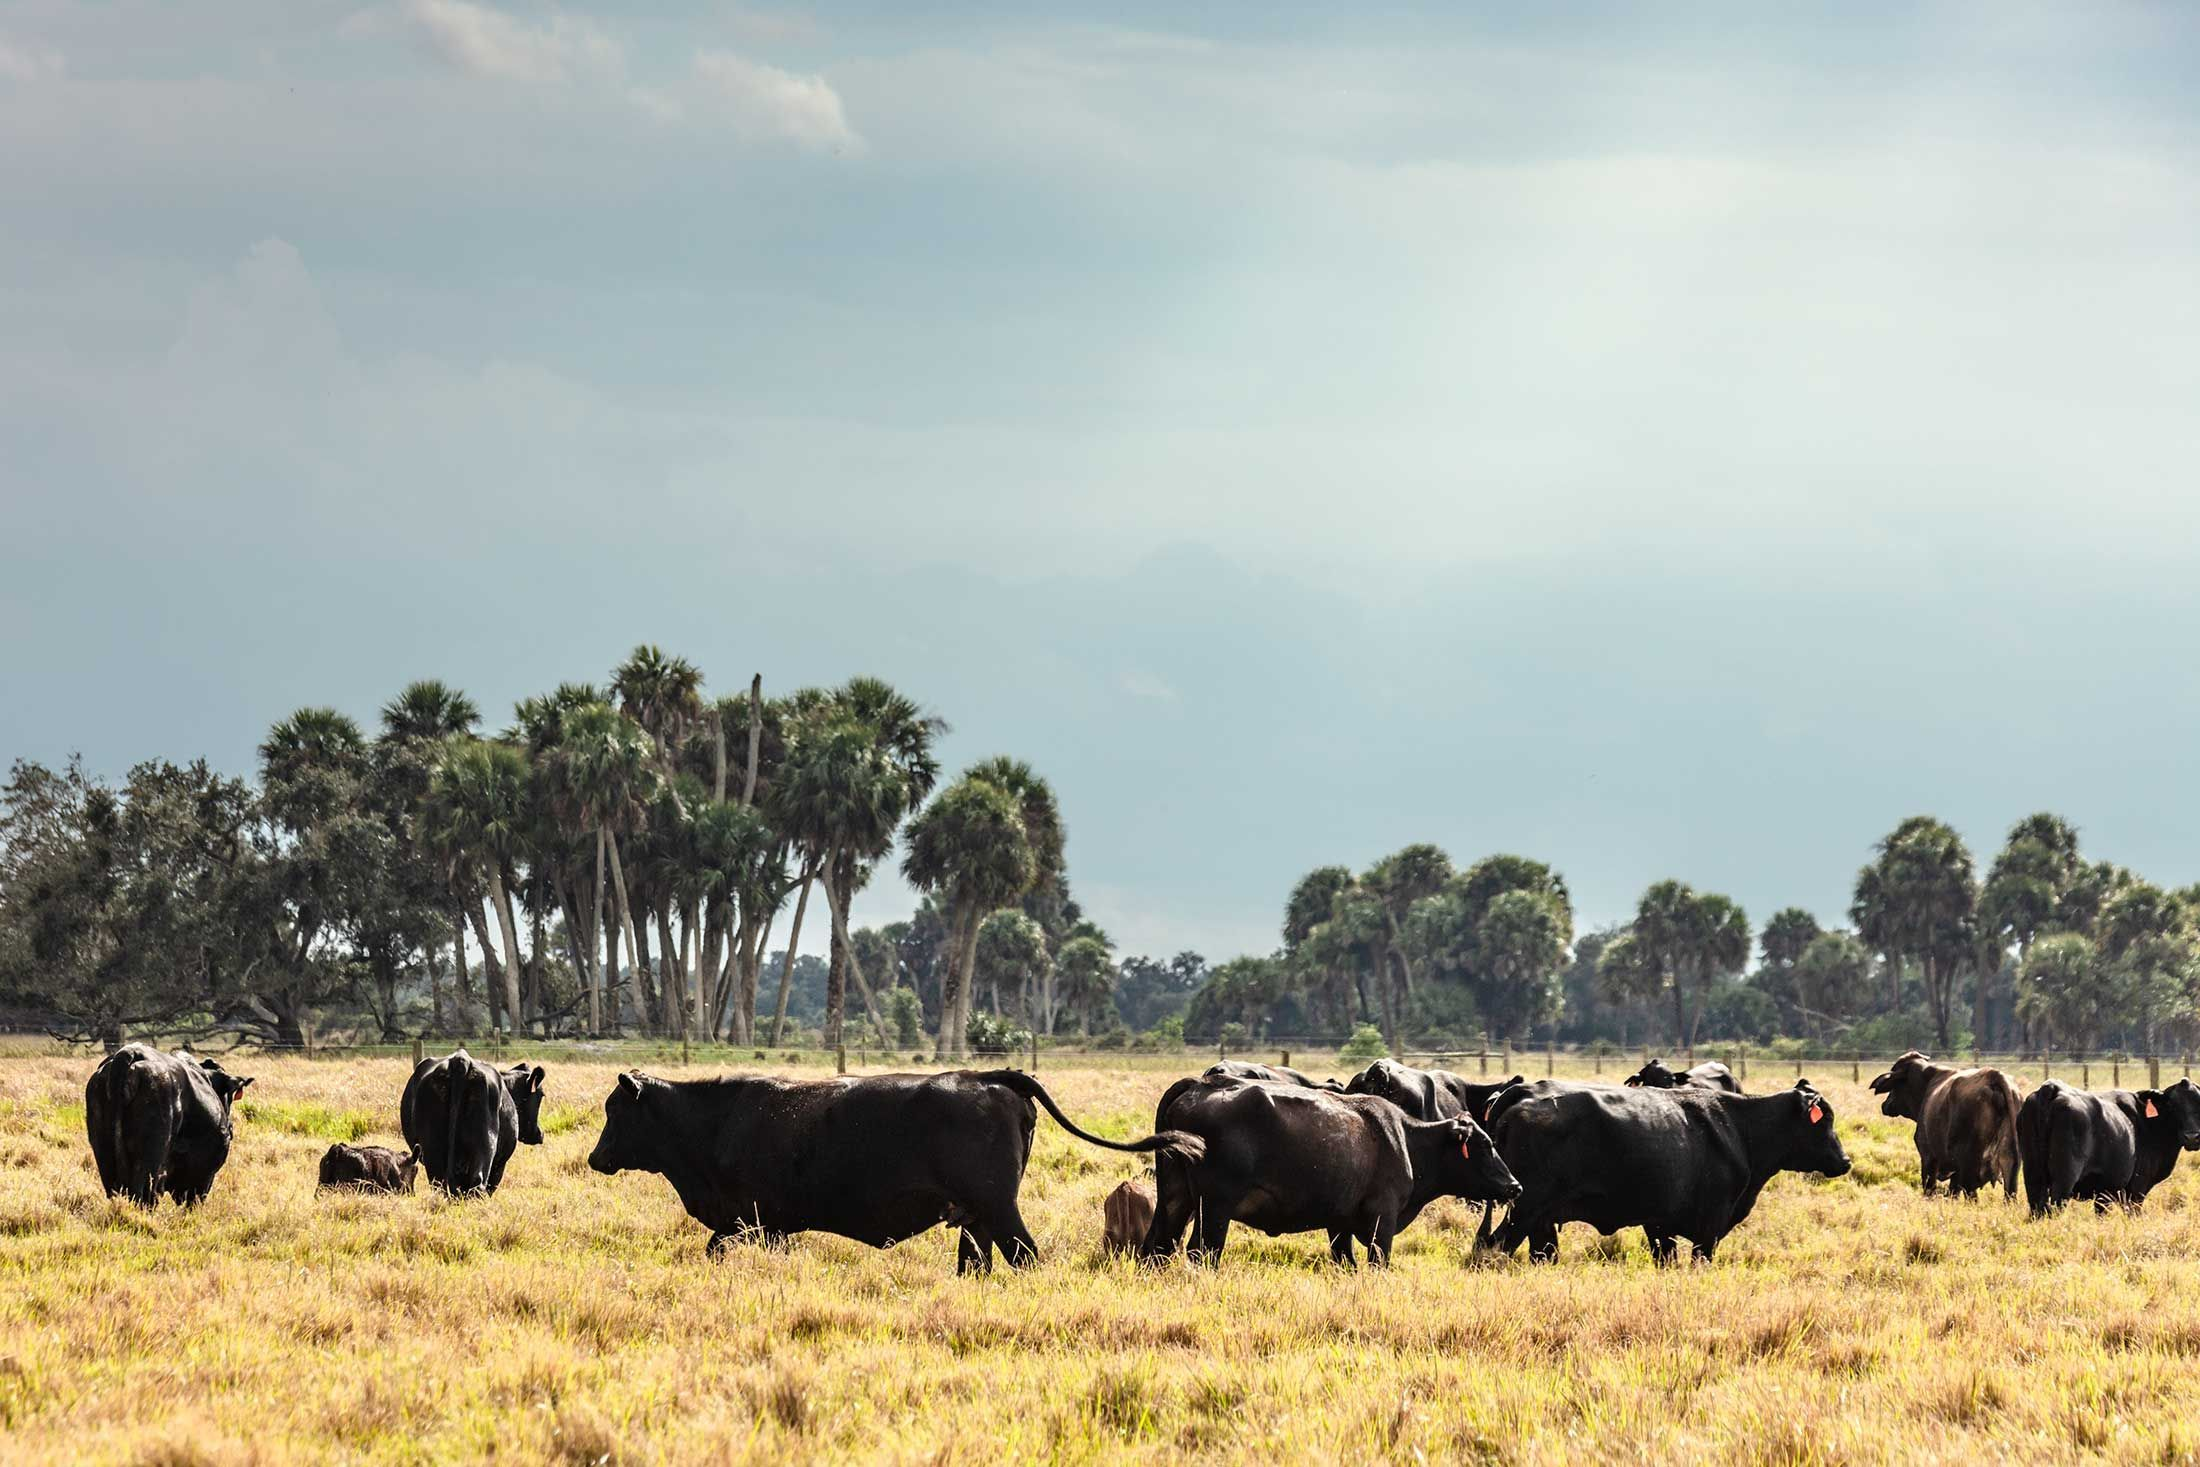 Surviving climate change starts with heatproofing the cow